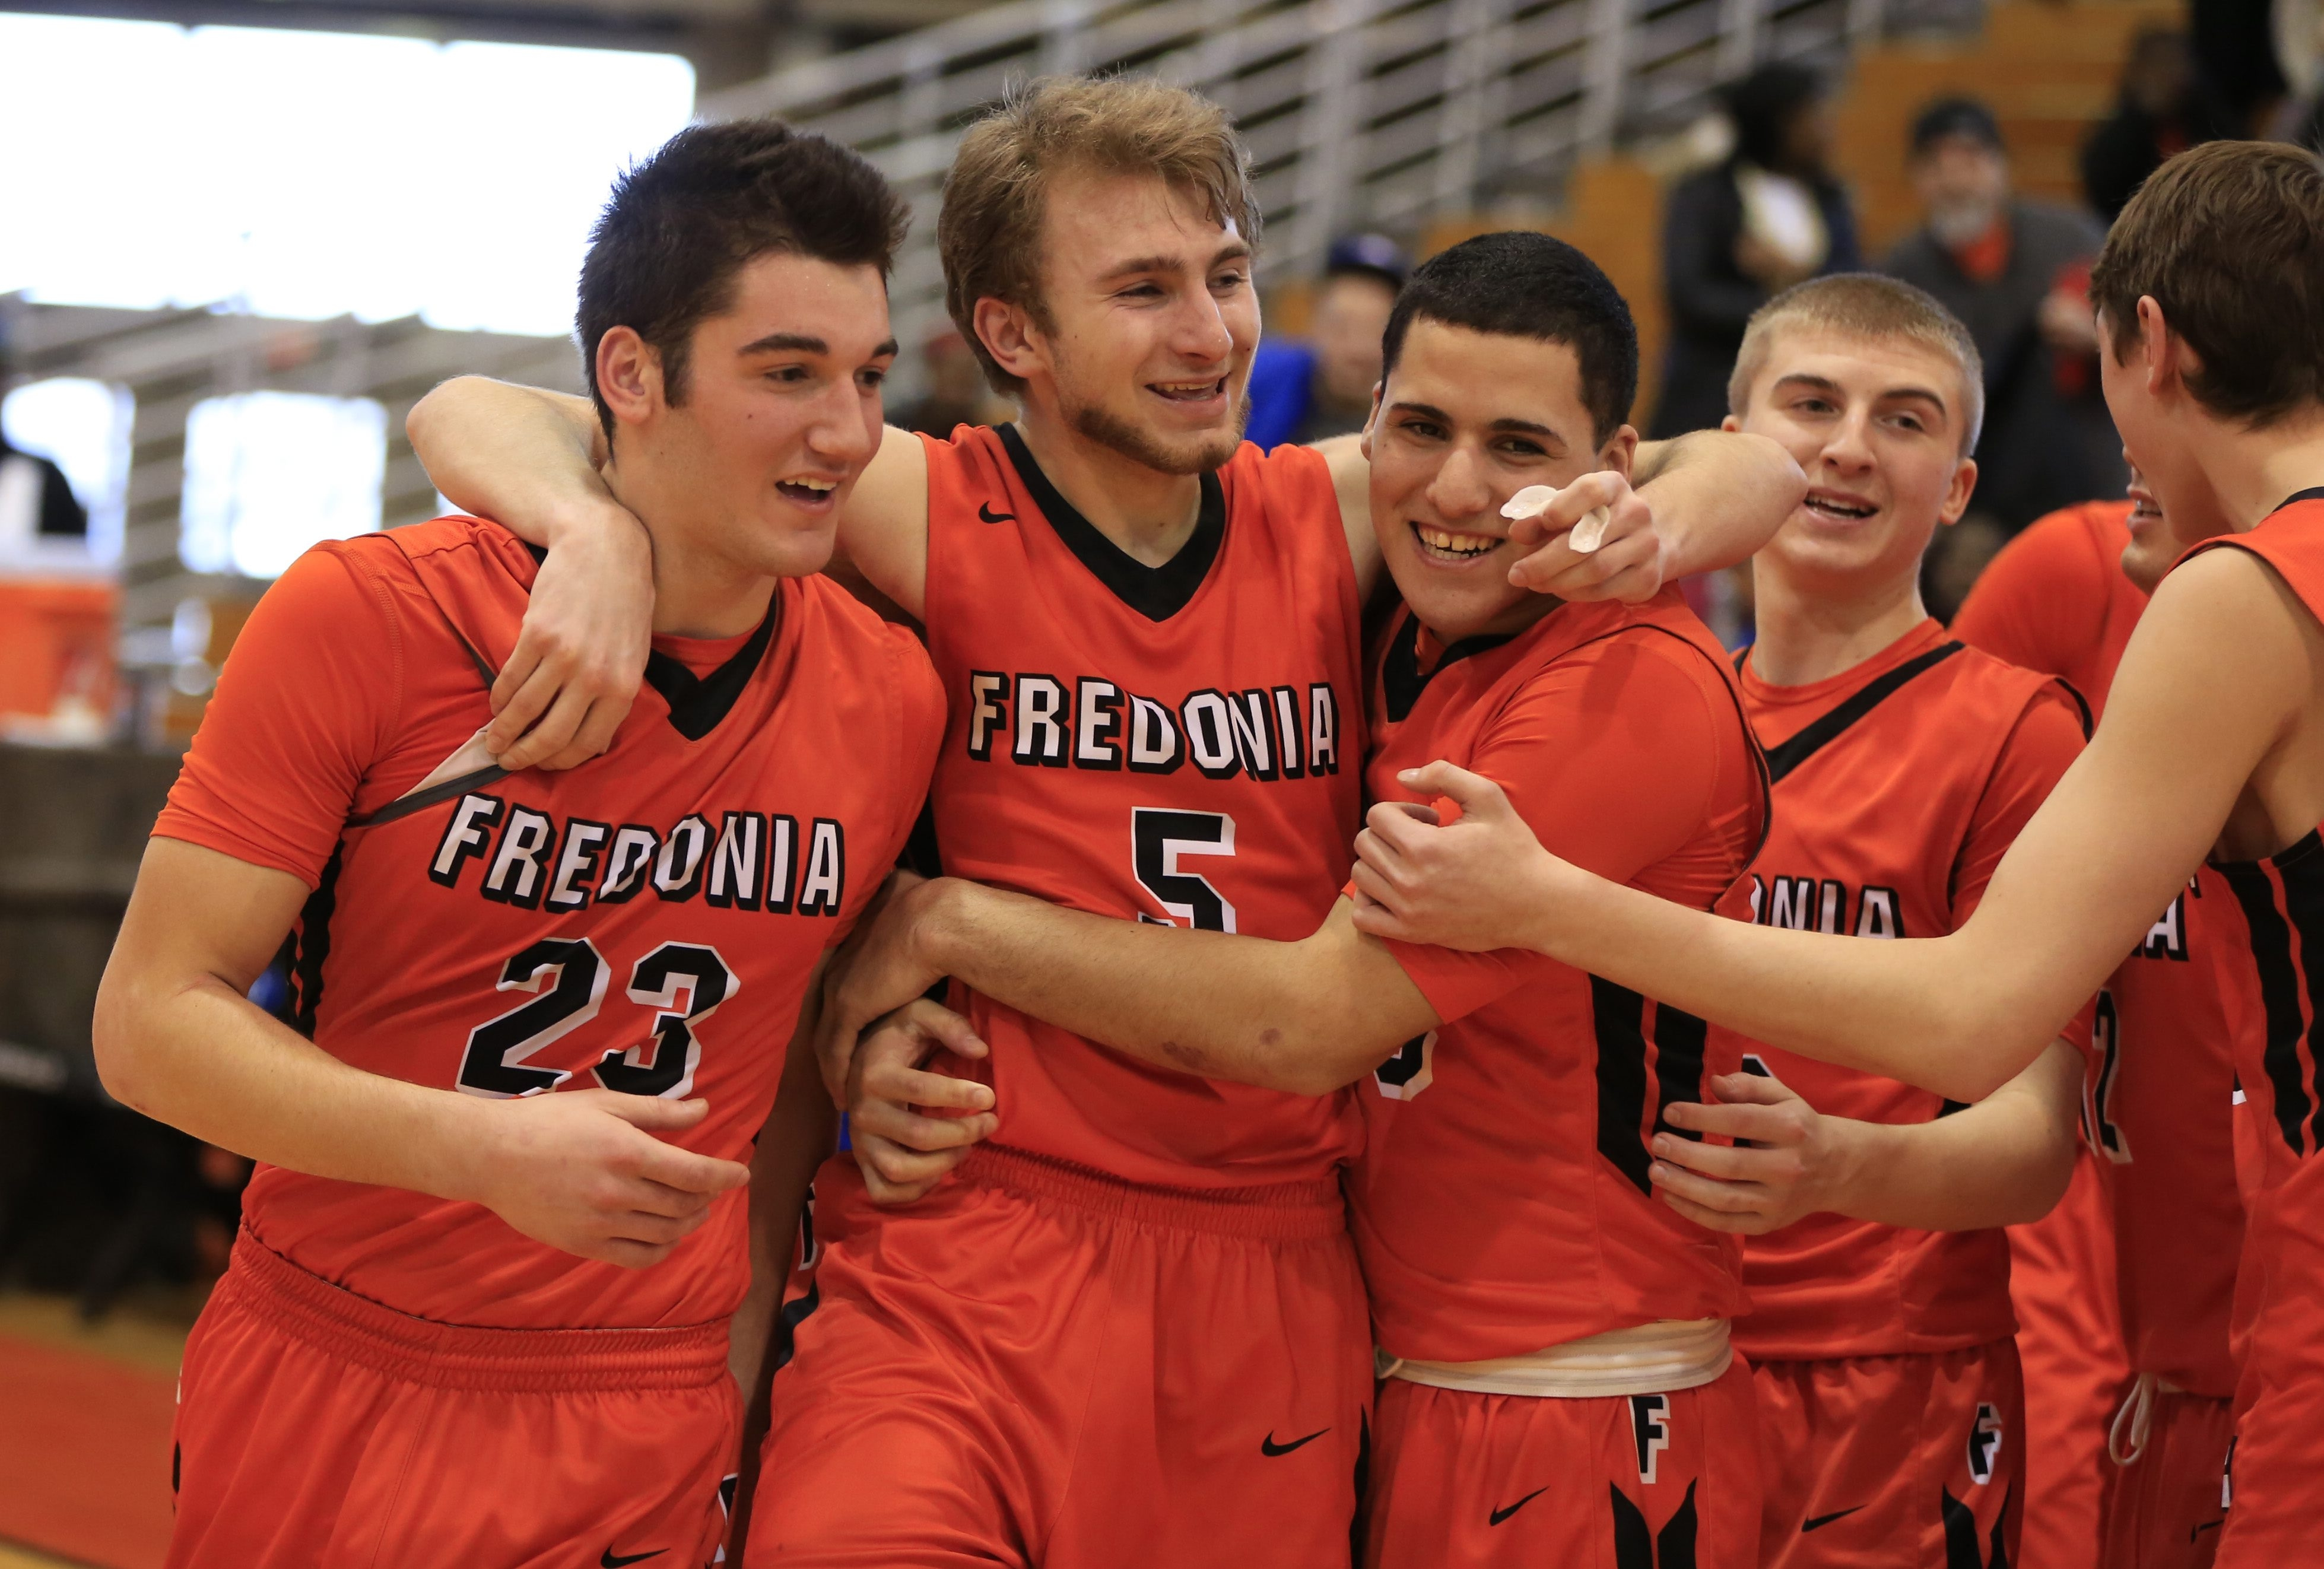 Fredonia players celebrate their victory over Health Science in the Class B-2 semifinals at the Buffalo State Sports  Arena.